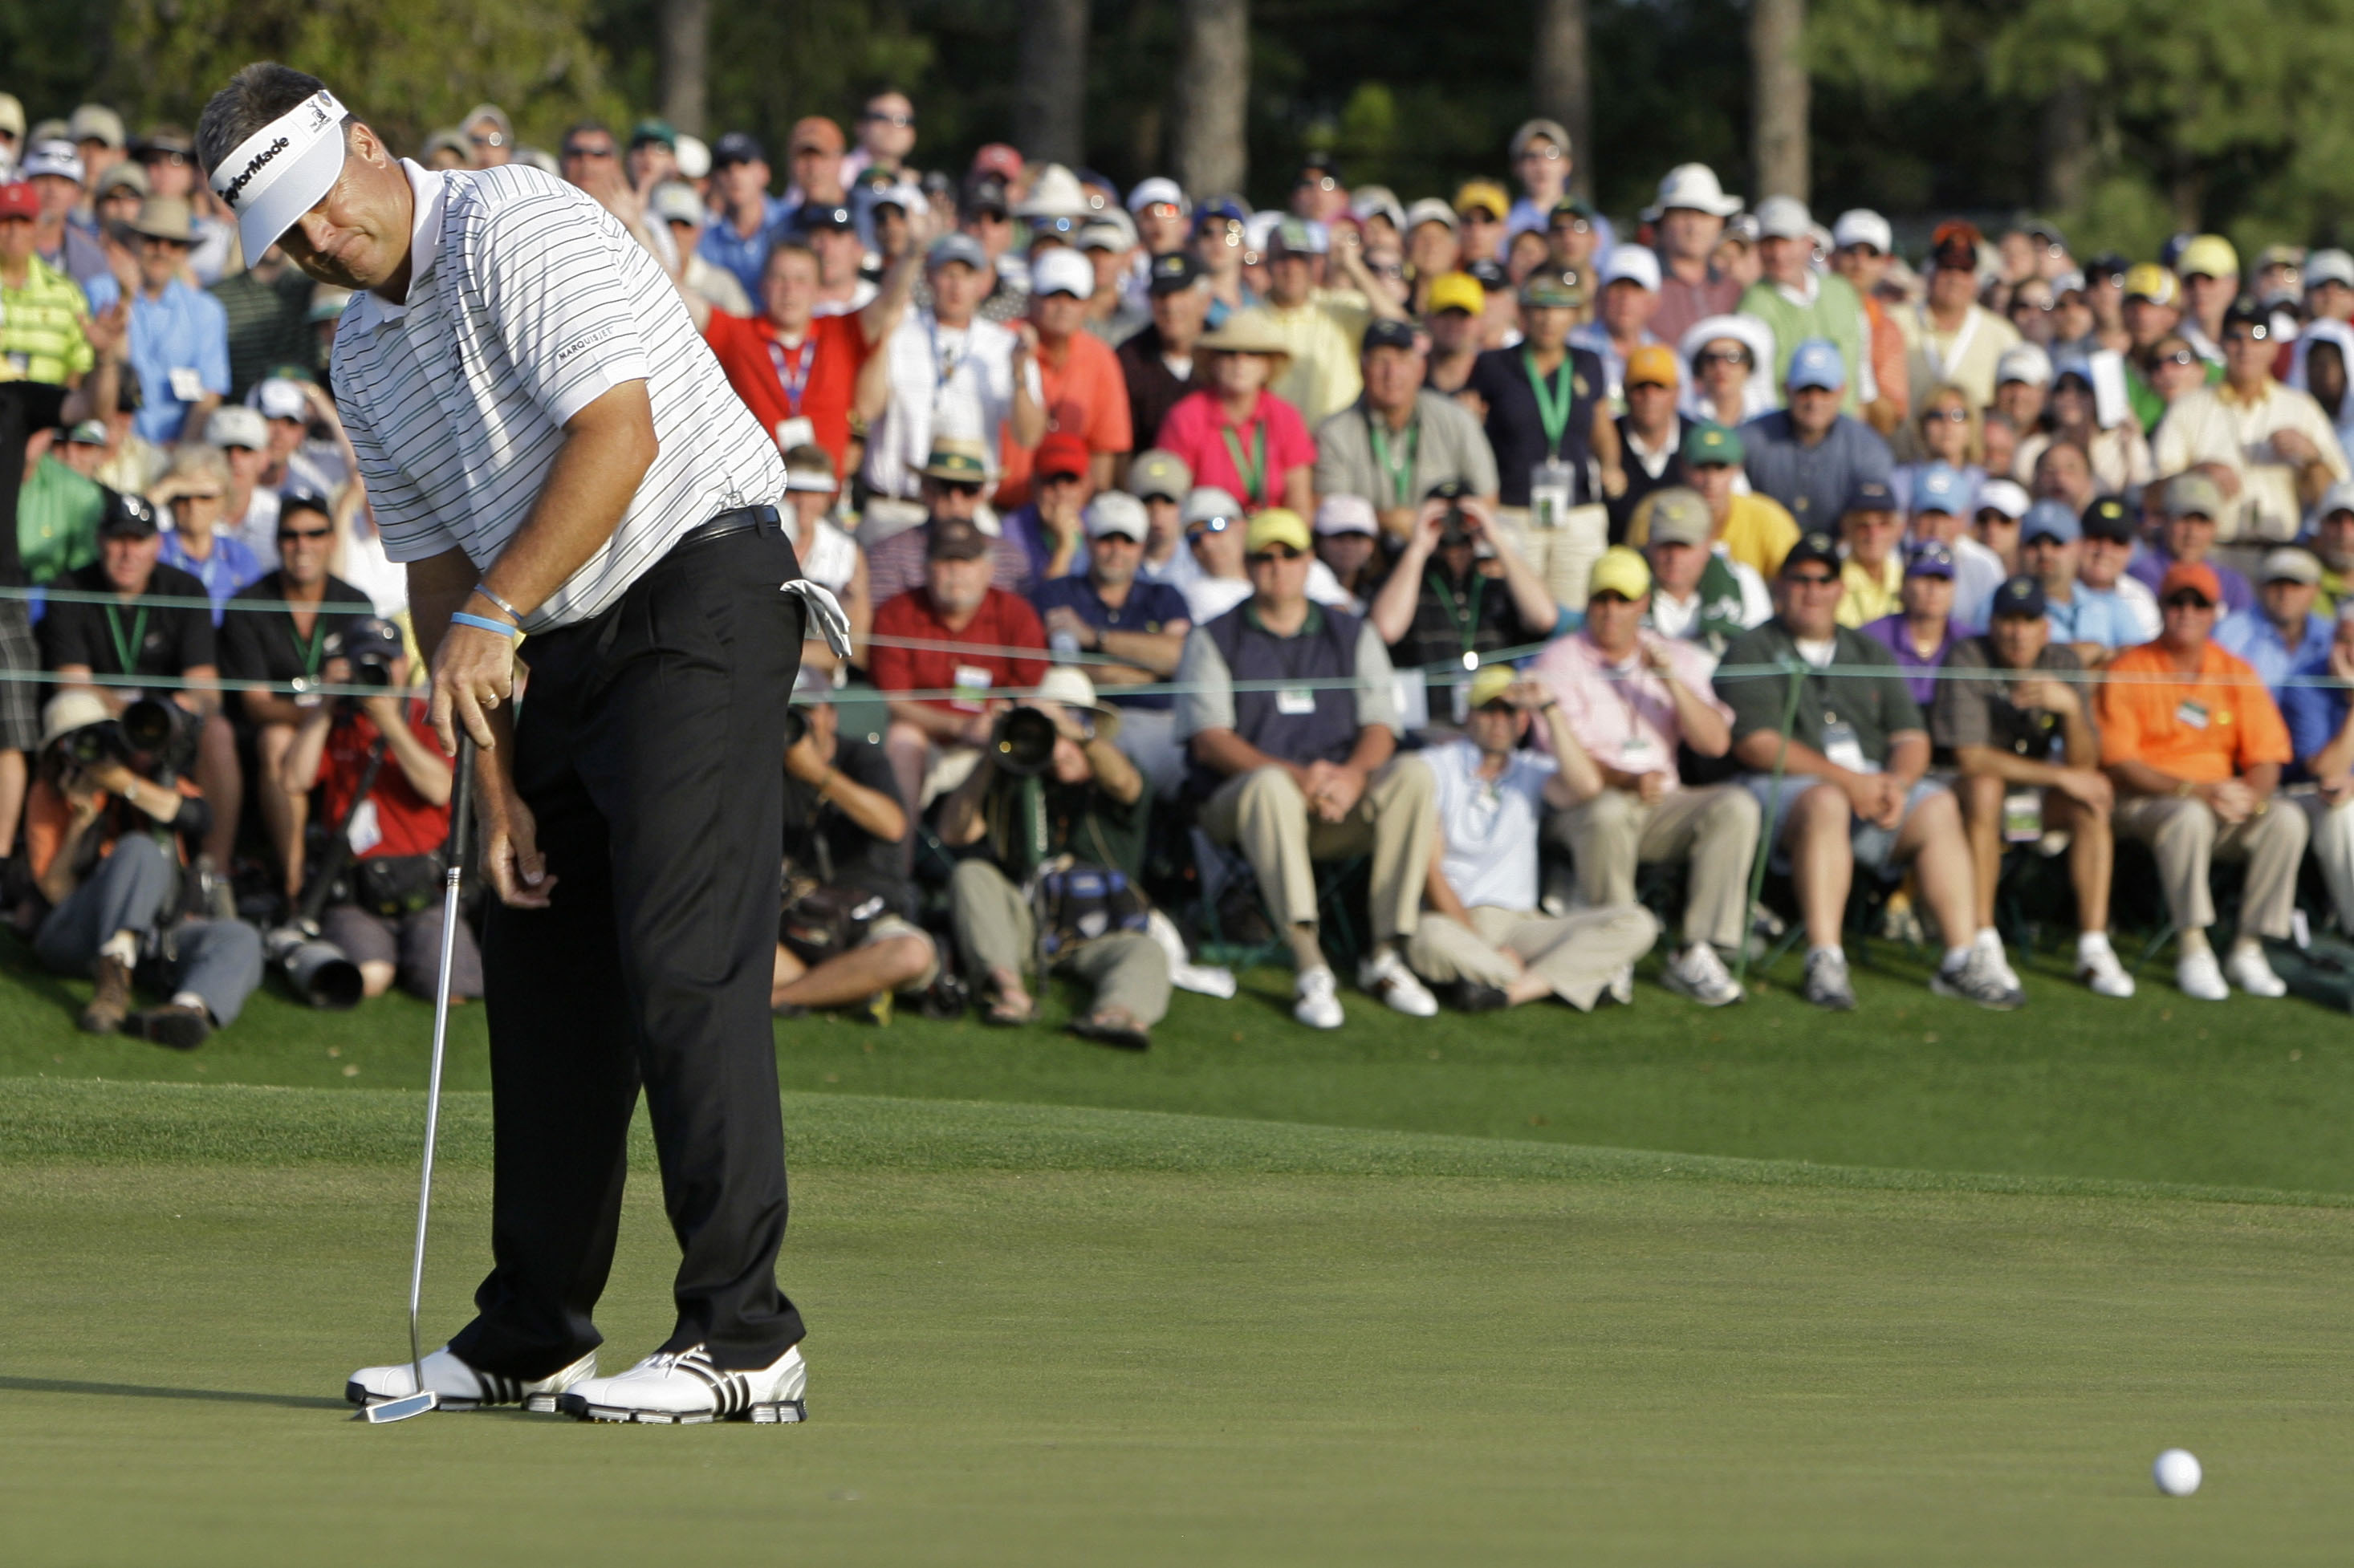 Kenny Perry watches as his par putt on the 18th hole misses during the final round of the 2009 Masters.